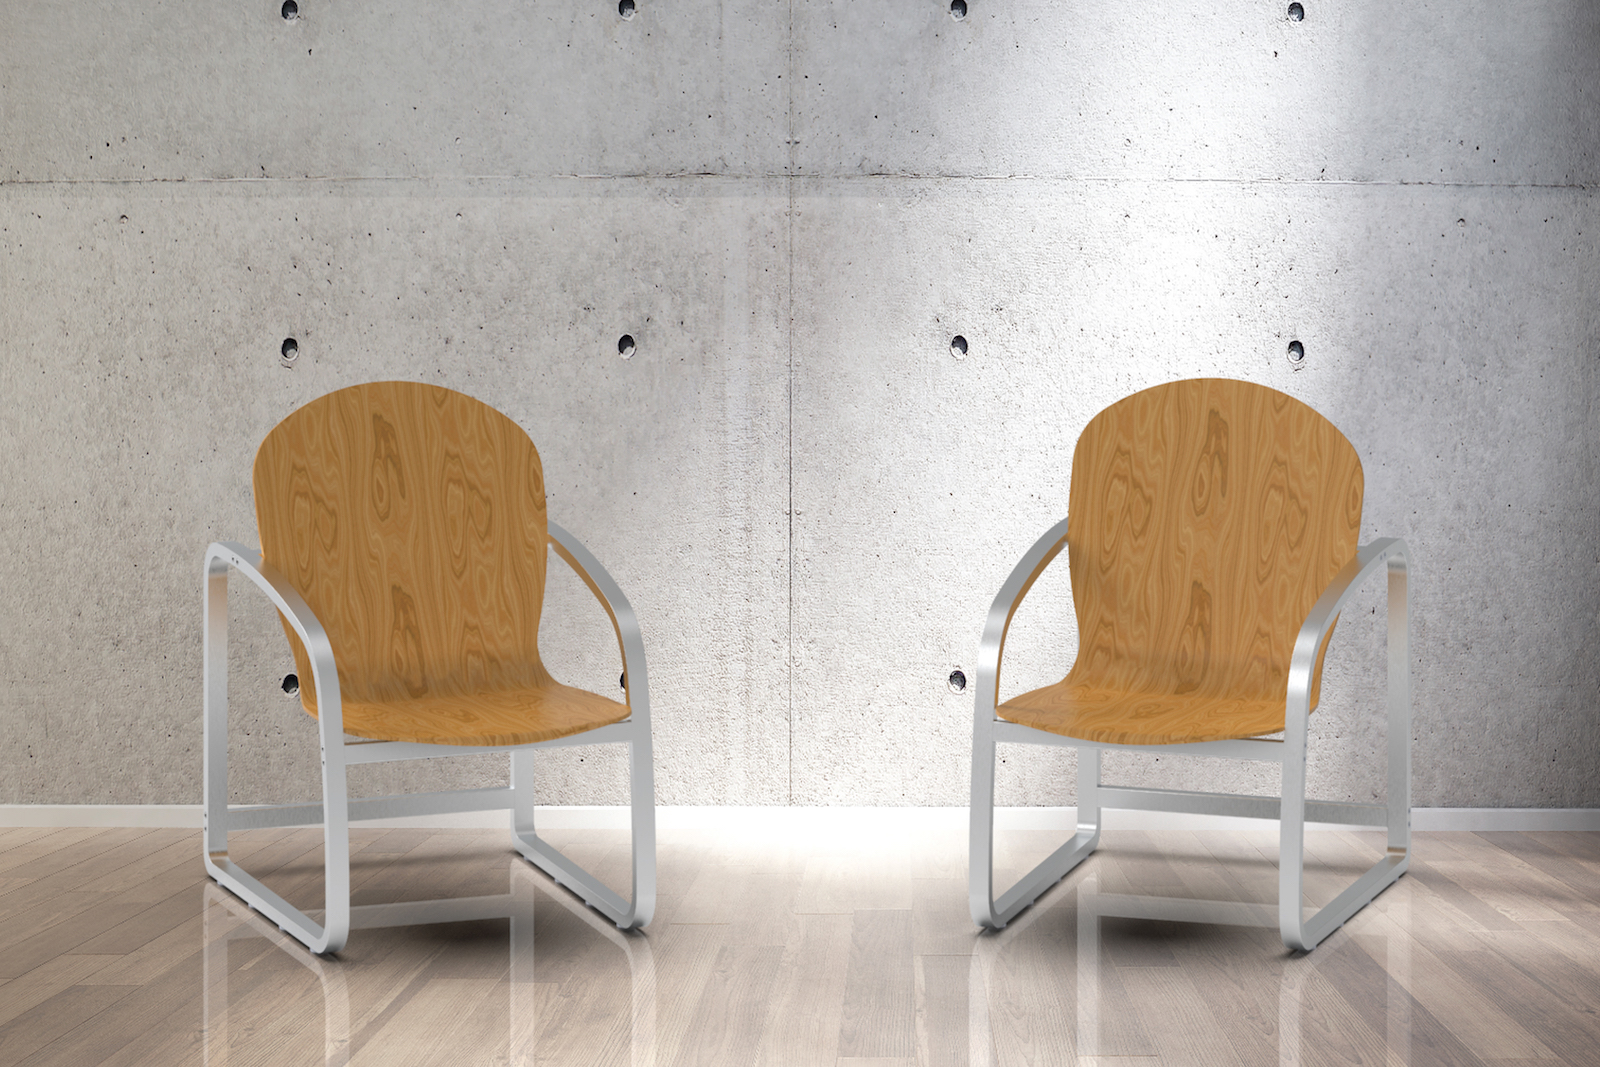 Figure 4. The BAKS chair, with its durable, comfortable and easy to assemble design, won Third Place.